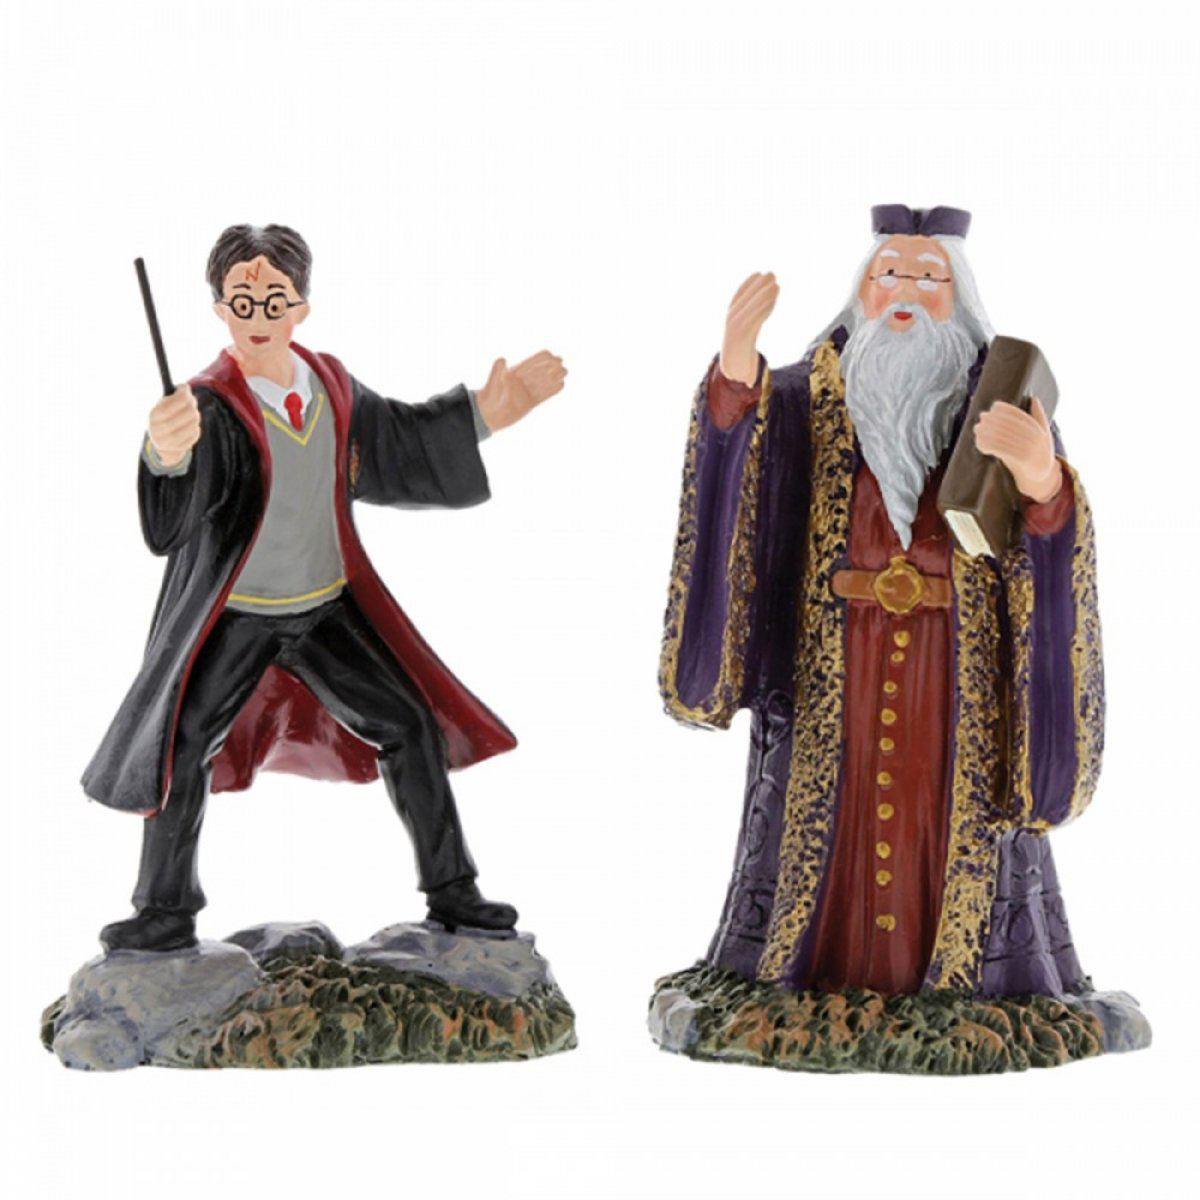 Figurine résine \'Harry Potter\' Harry et Dumbledore - hauteur 8 cm - [A1993]